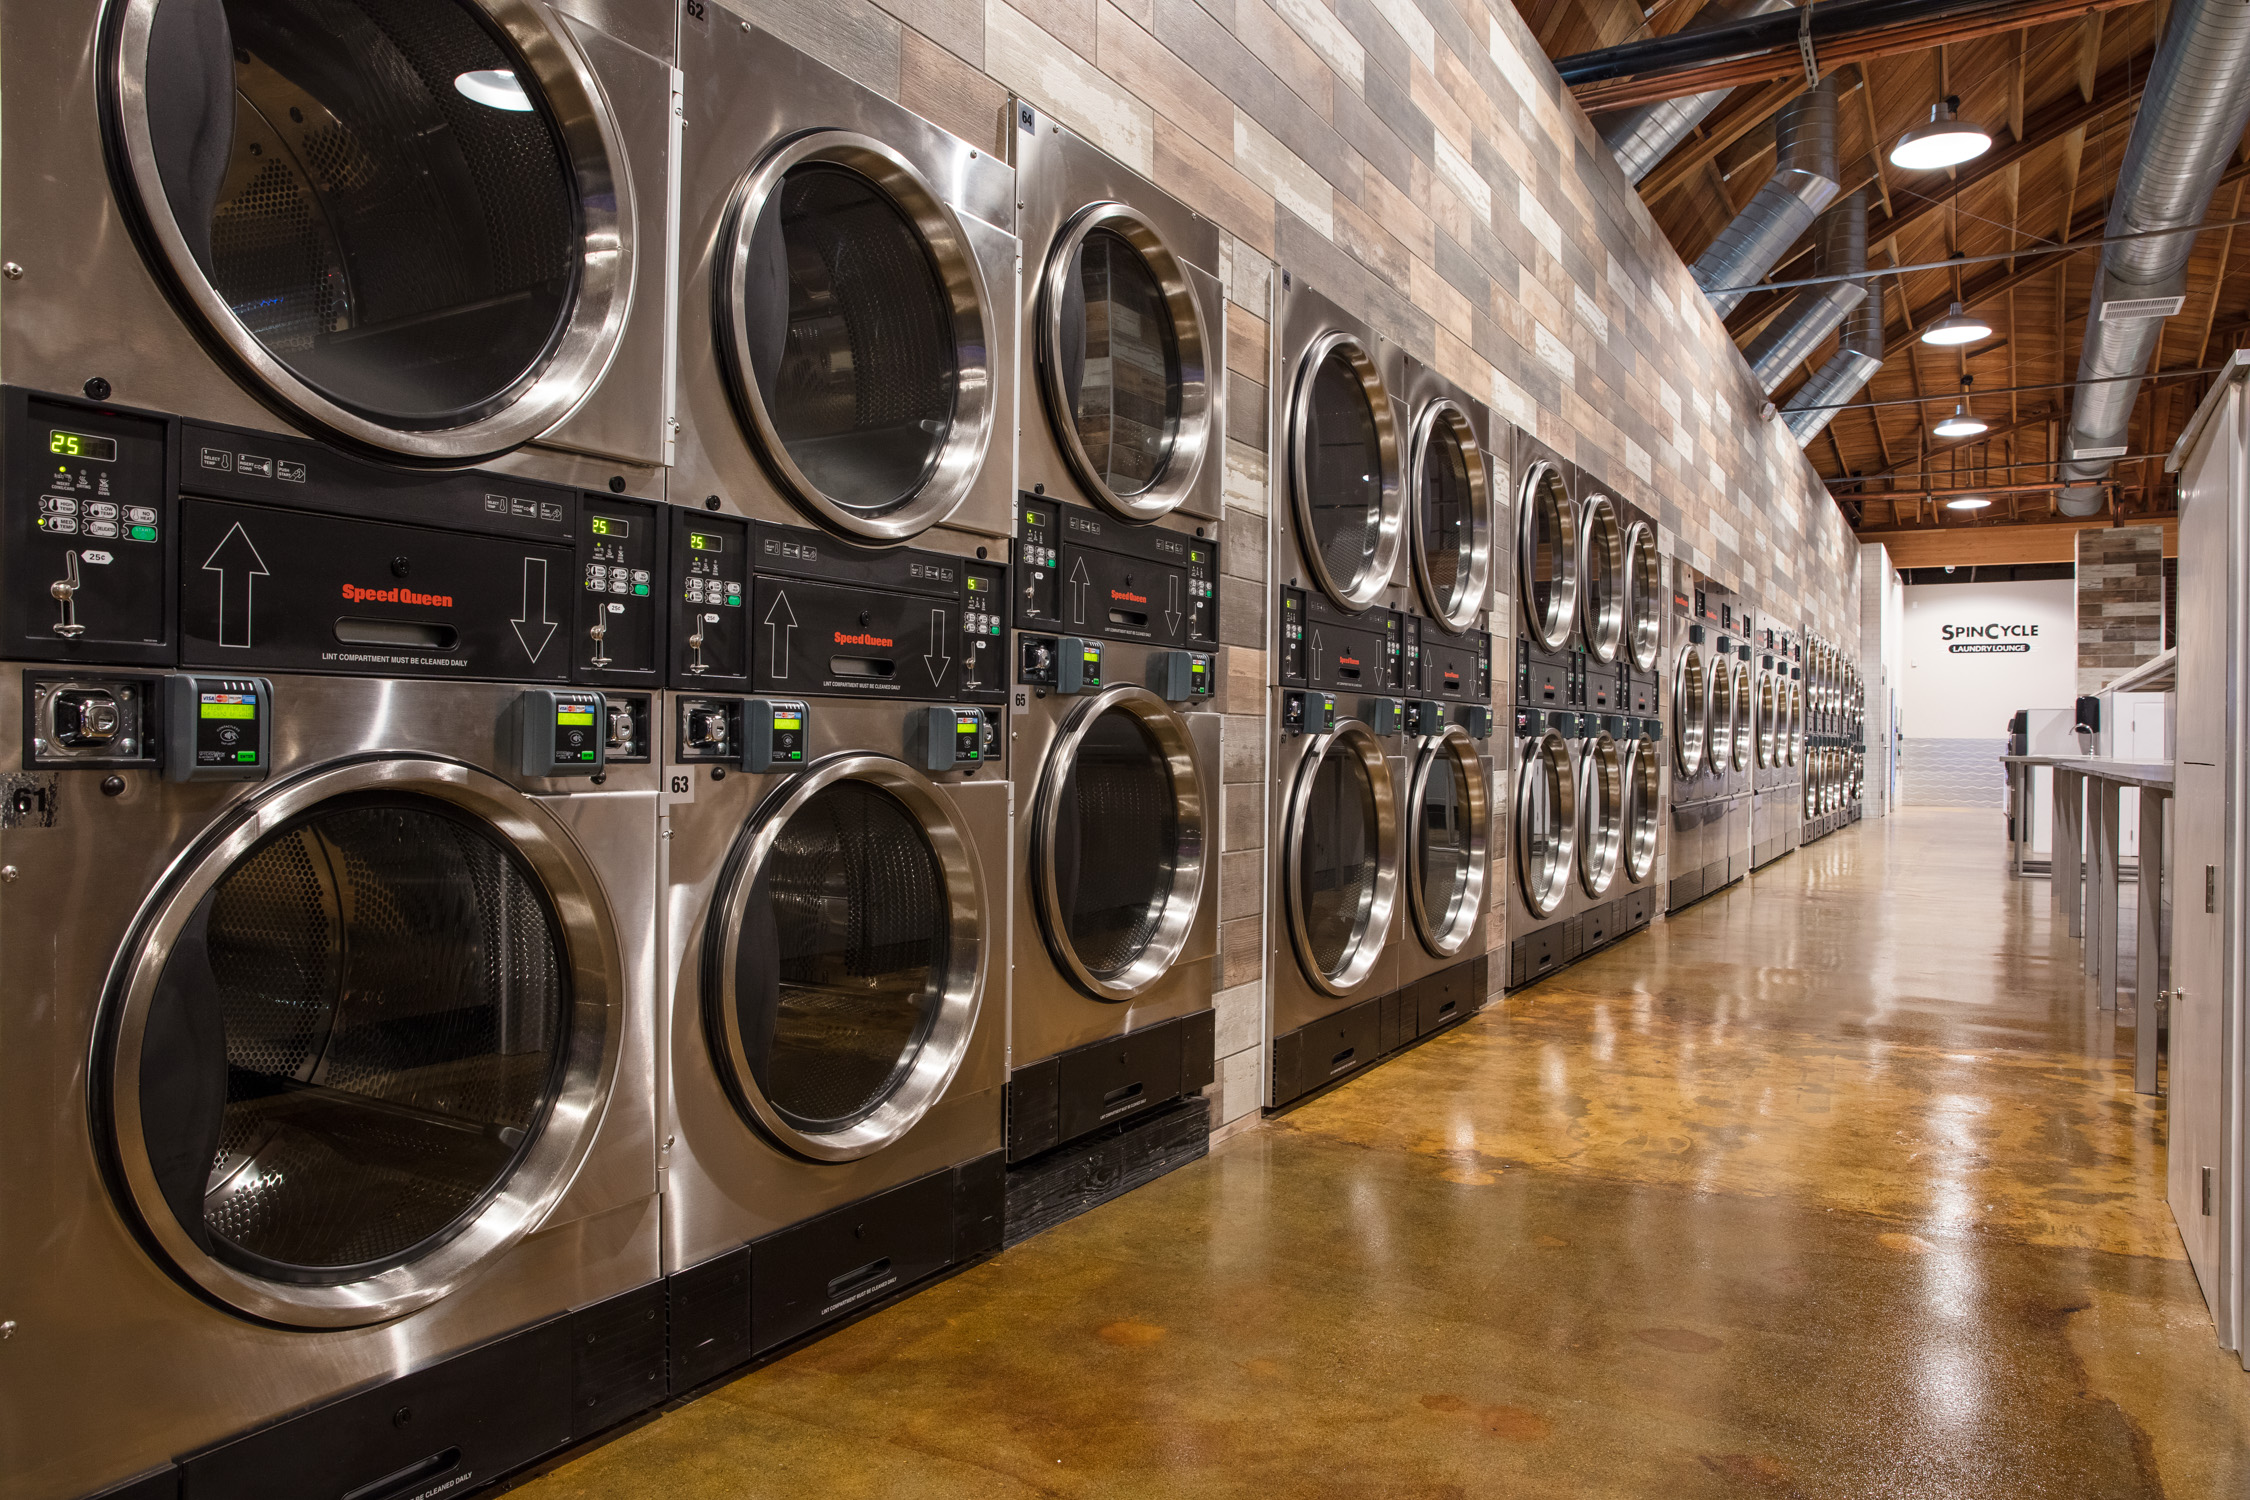 Stack dryers